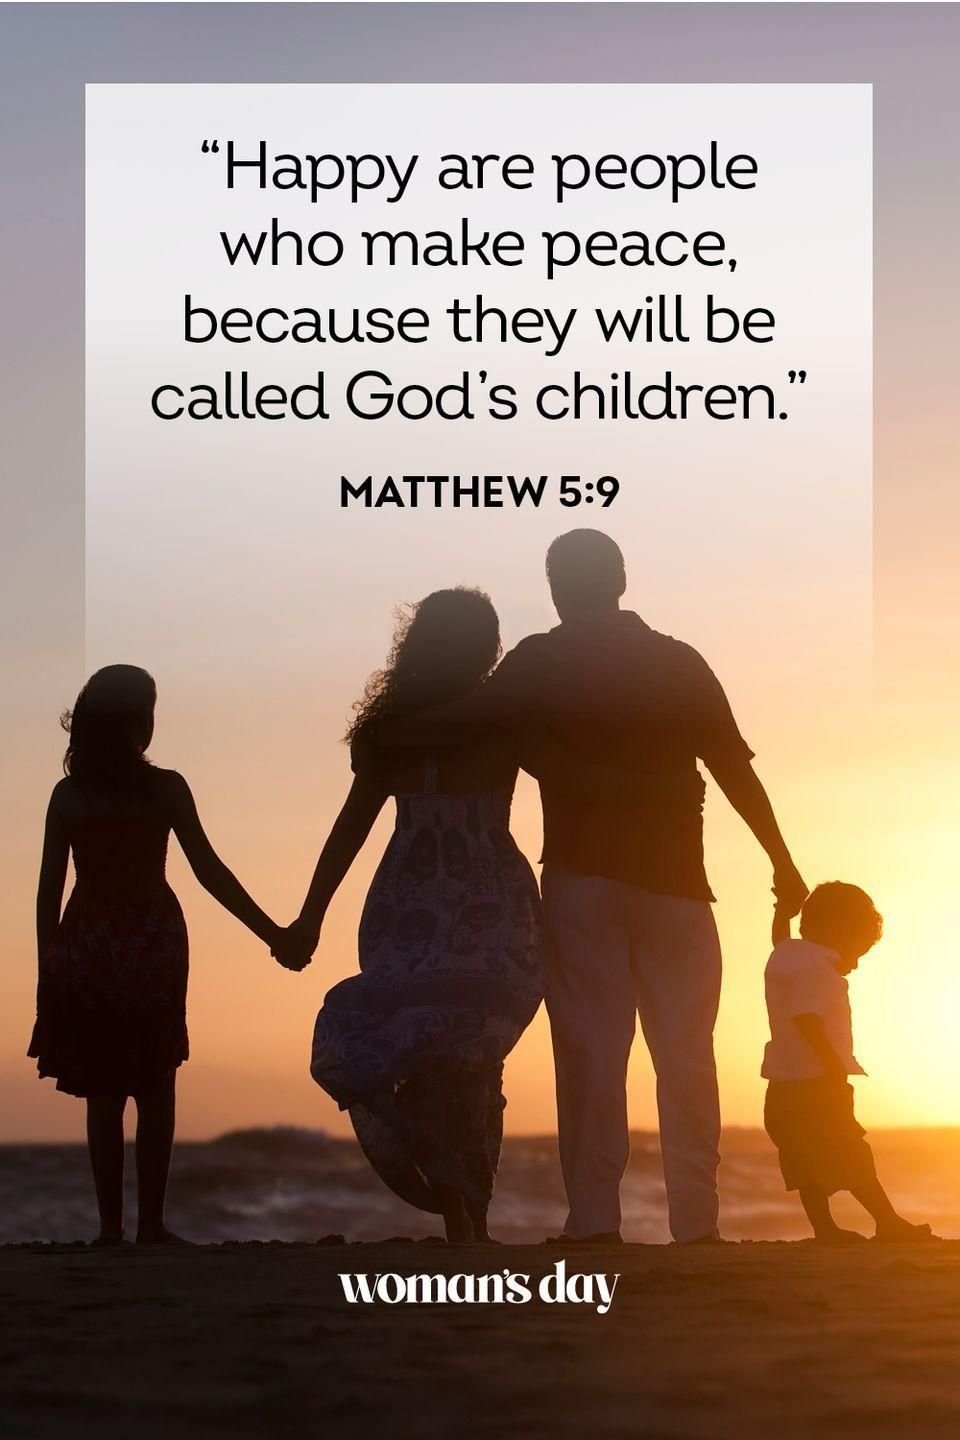 """<p>""""Happy are people who make peace, because they will be called God's children."""" — Matthew 5:9</p><p><strong>The Good News:</strong> The search for peace, at home and around the world, is a holy endeavor; Jesus calls those who pursue it the children of God.</p>"""